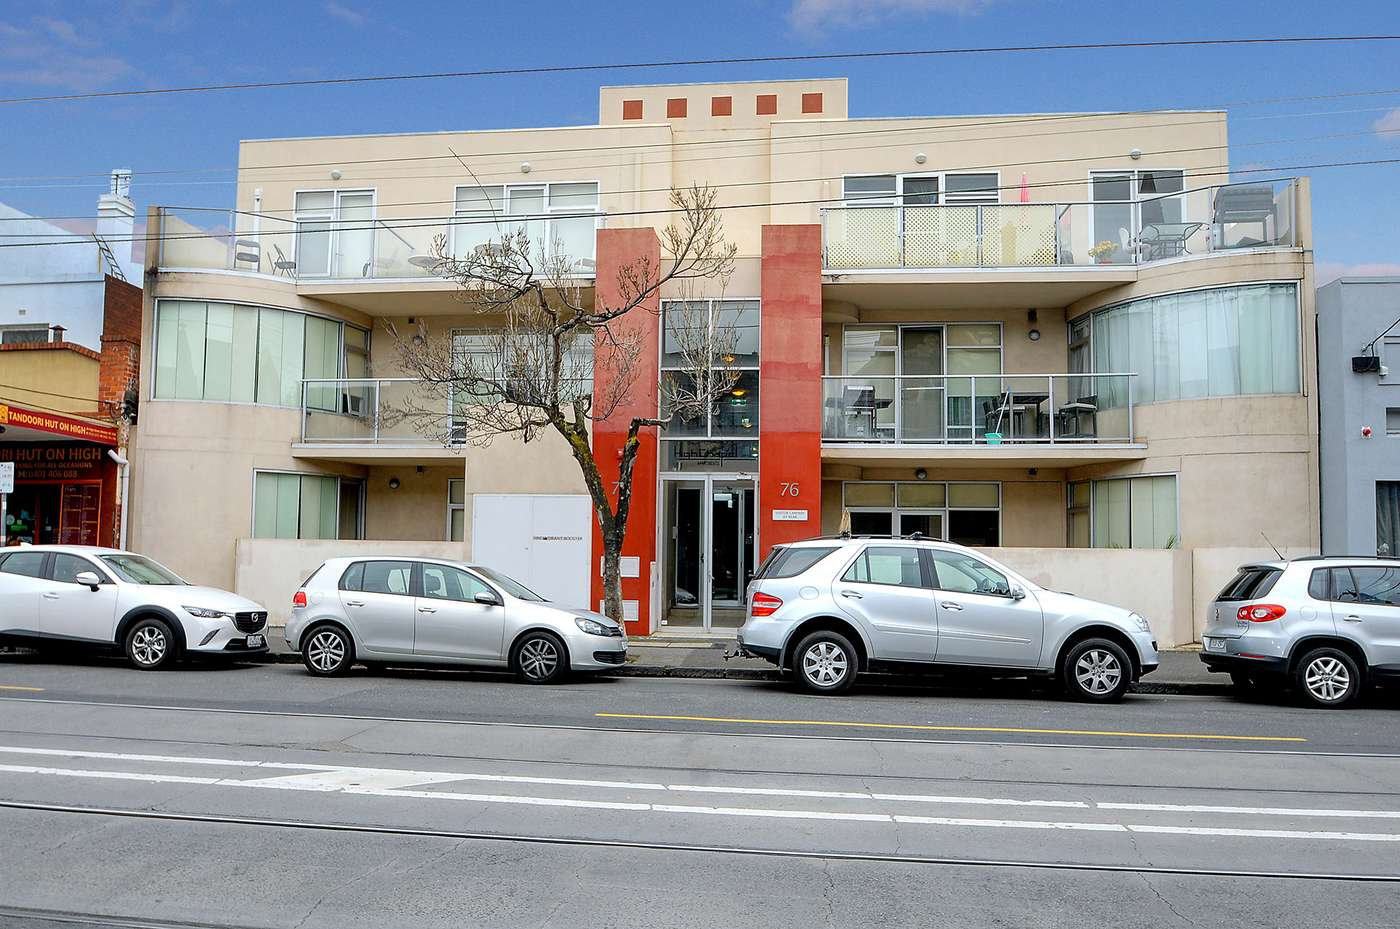 Main view of Homely apartment listing, 7/72-76 High Street, Windsor, VIC 3181